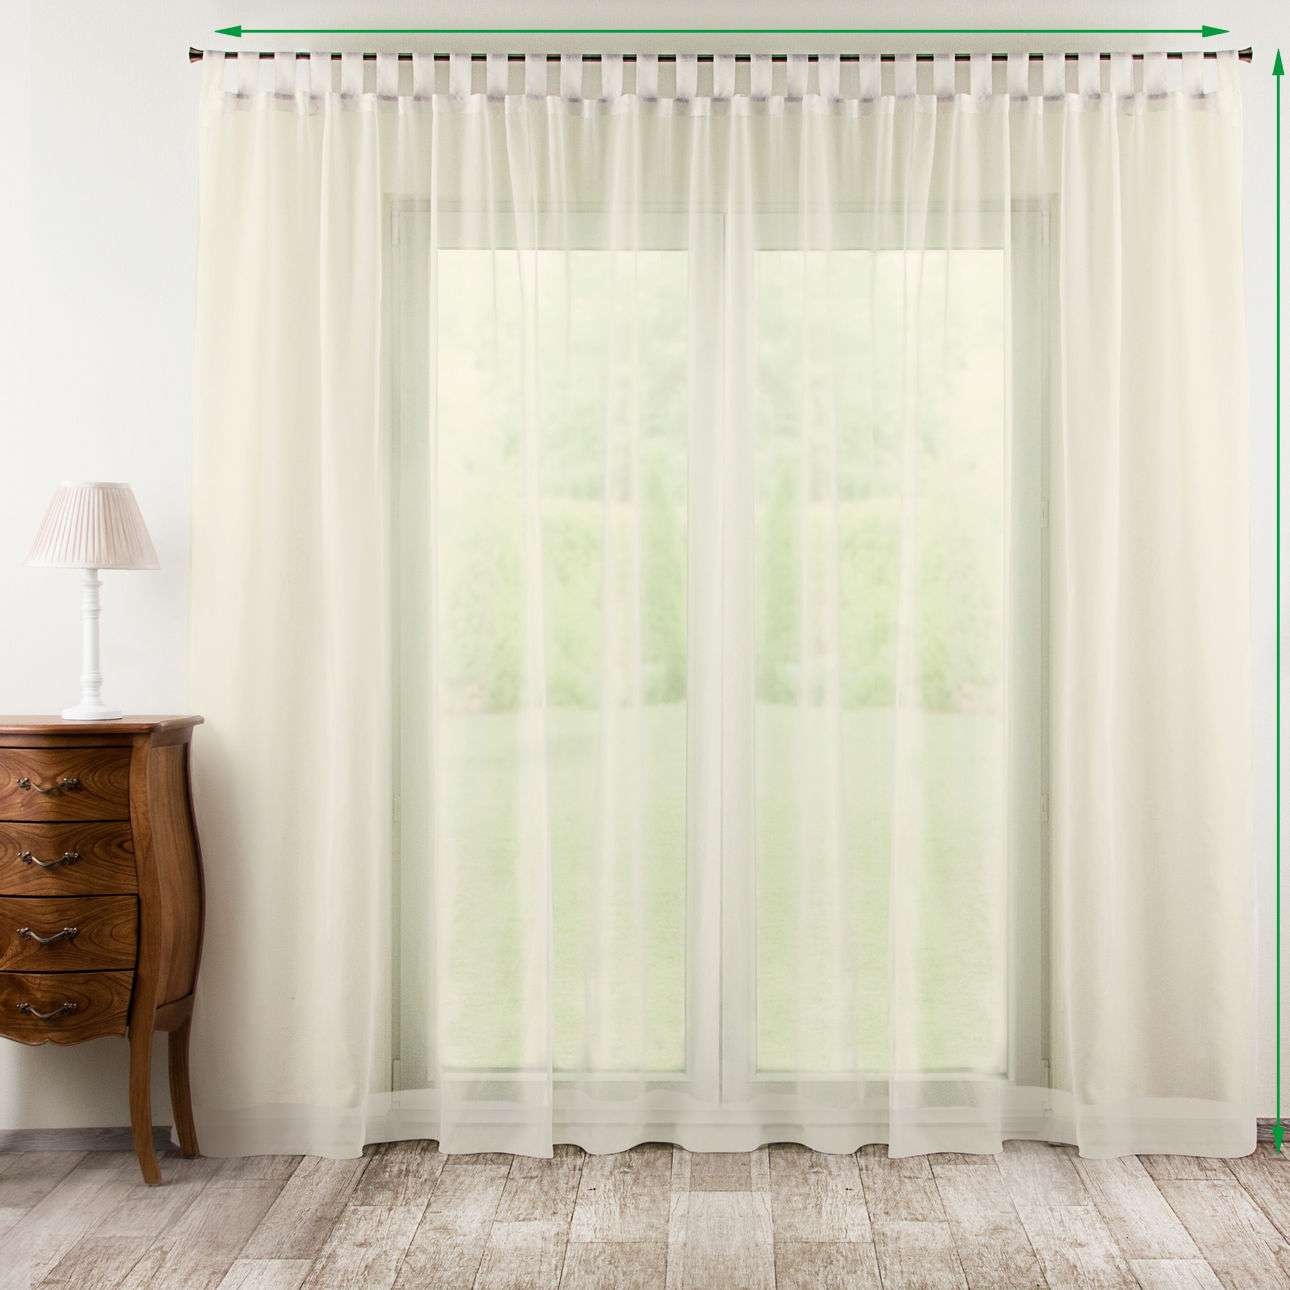 Tab top net curtains in collection Voile, fabric: 900-01